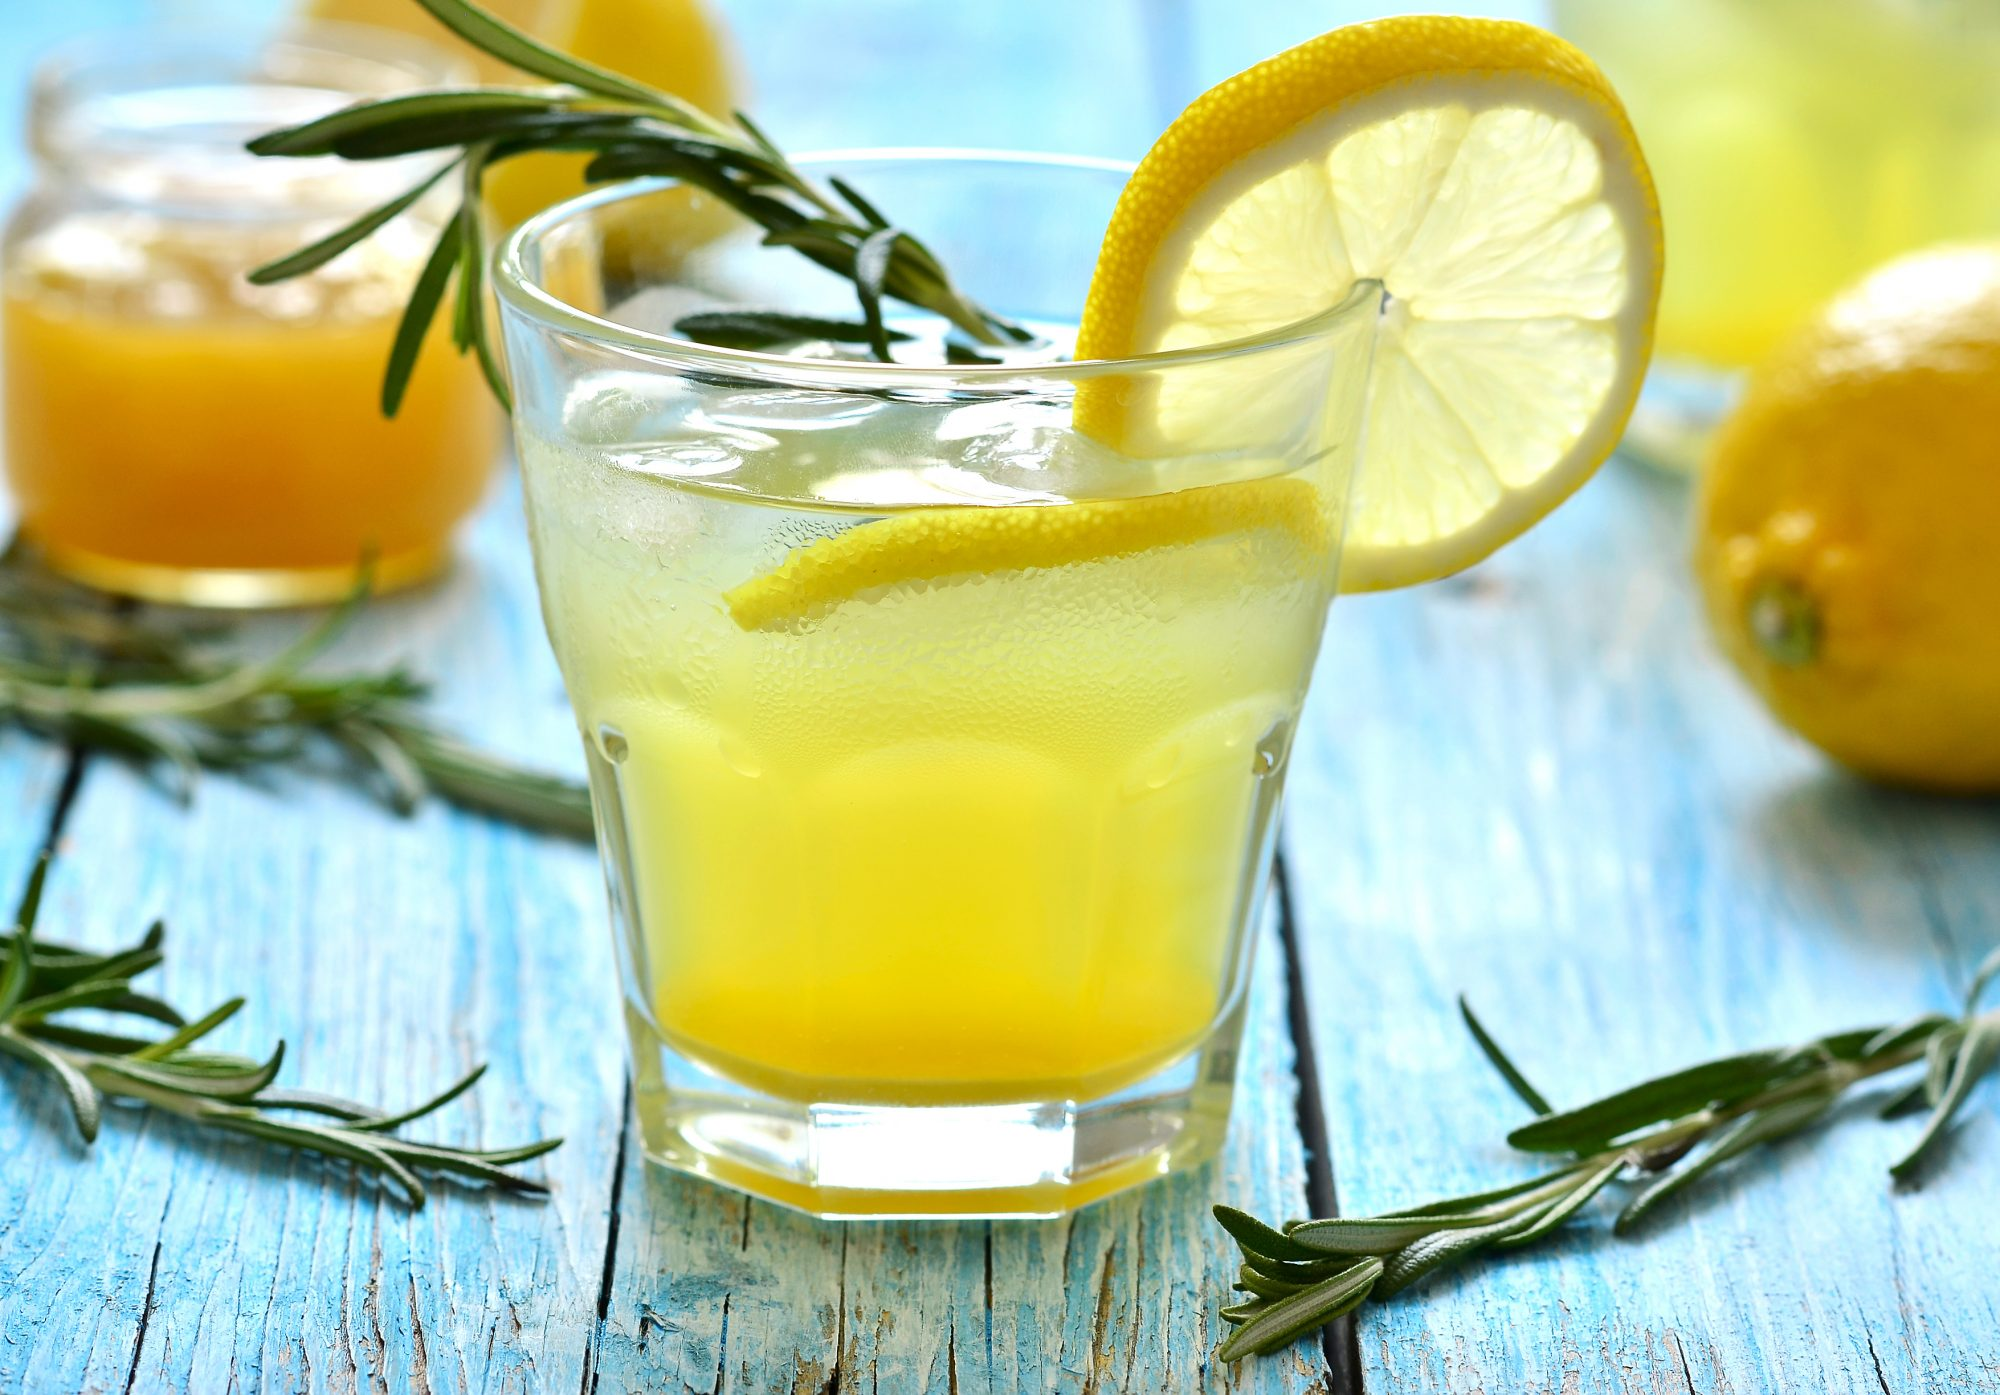 Lemon fizz drink in a glass.